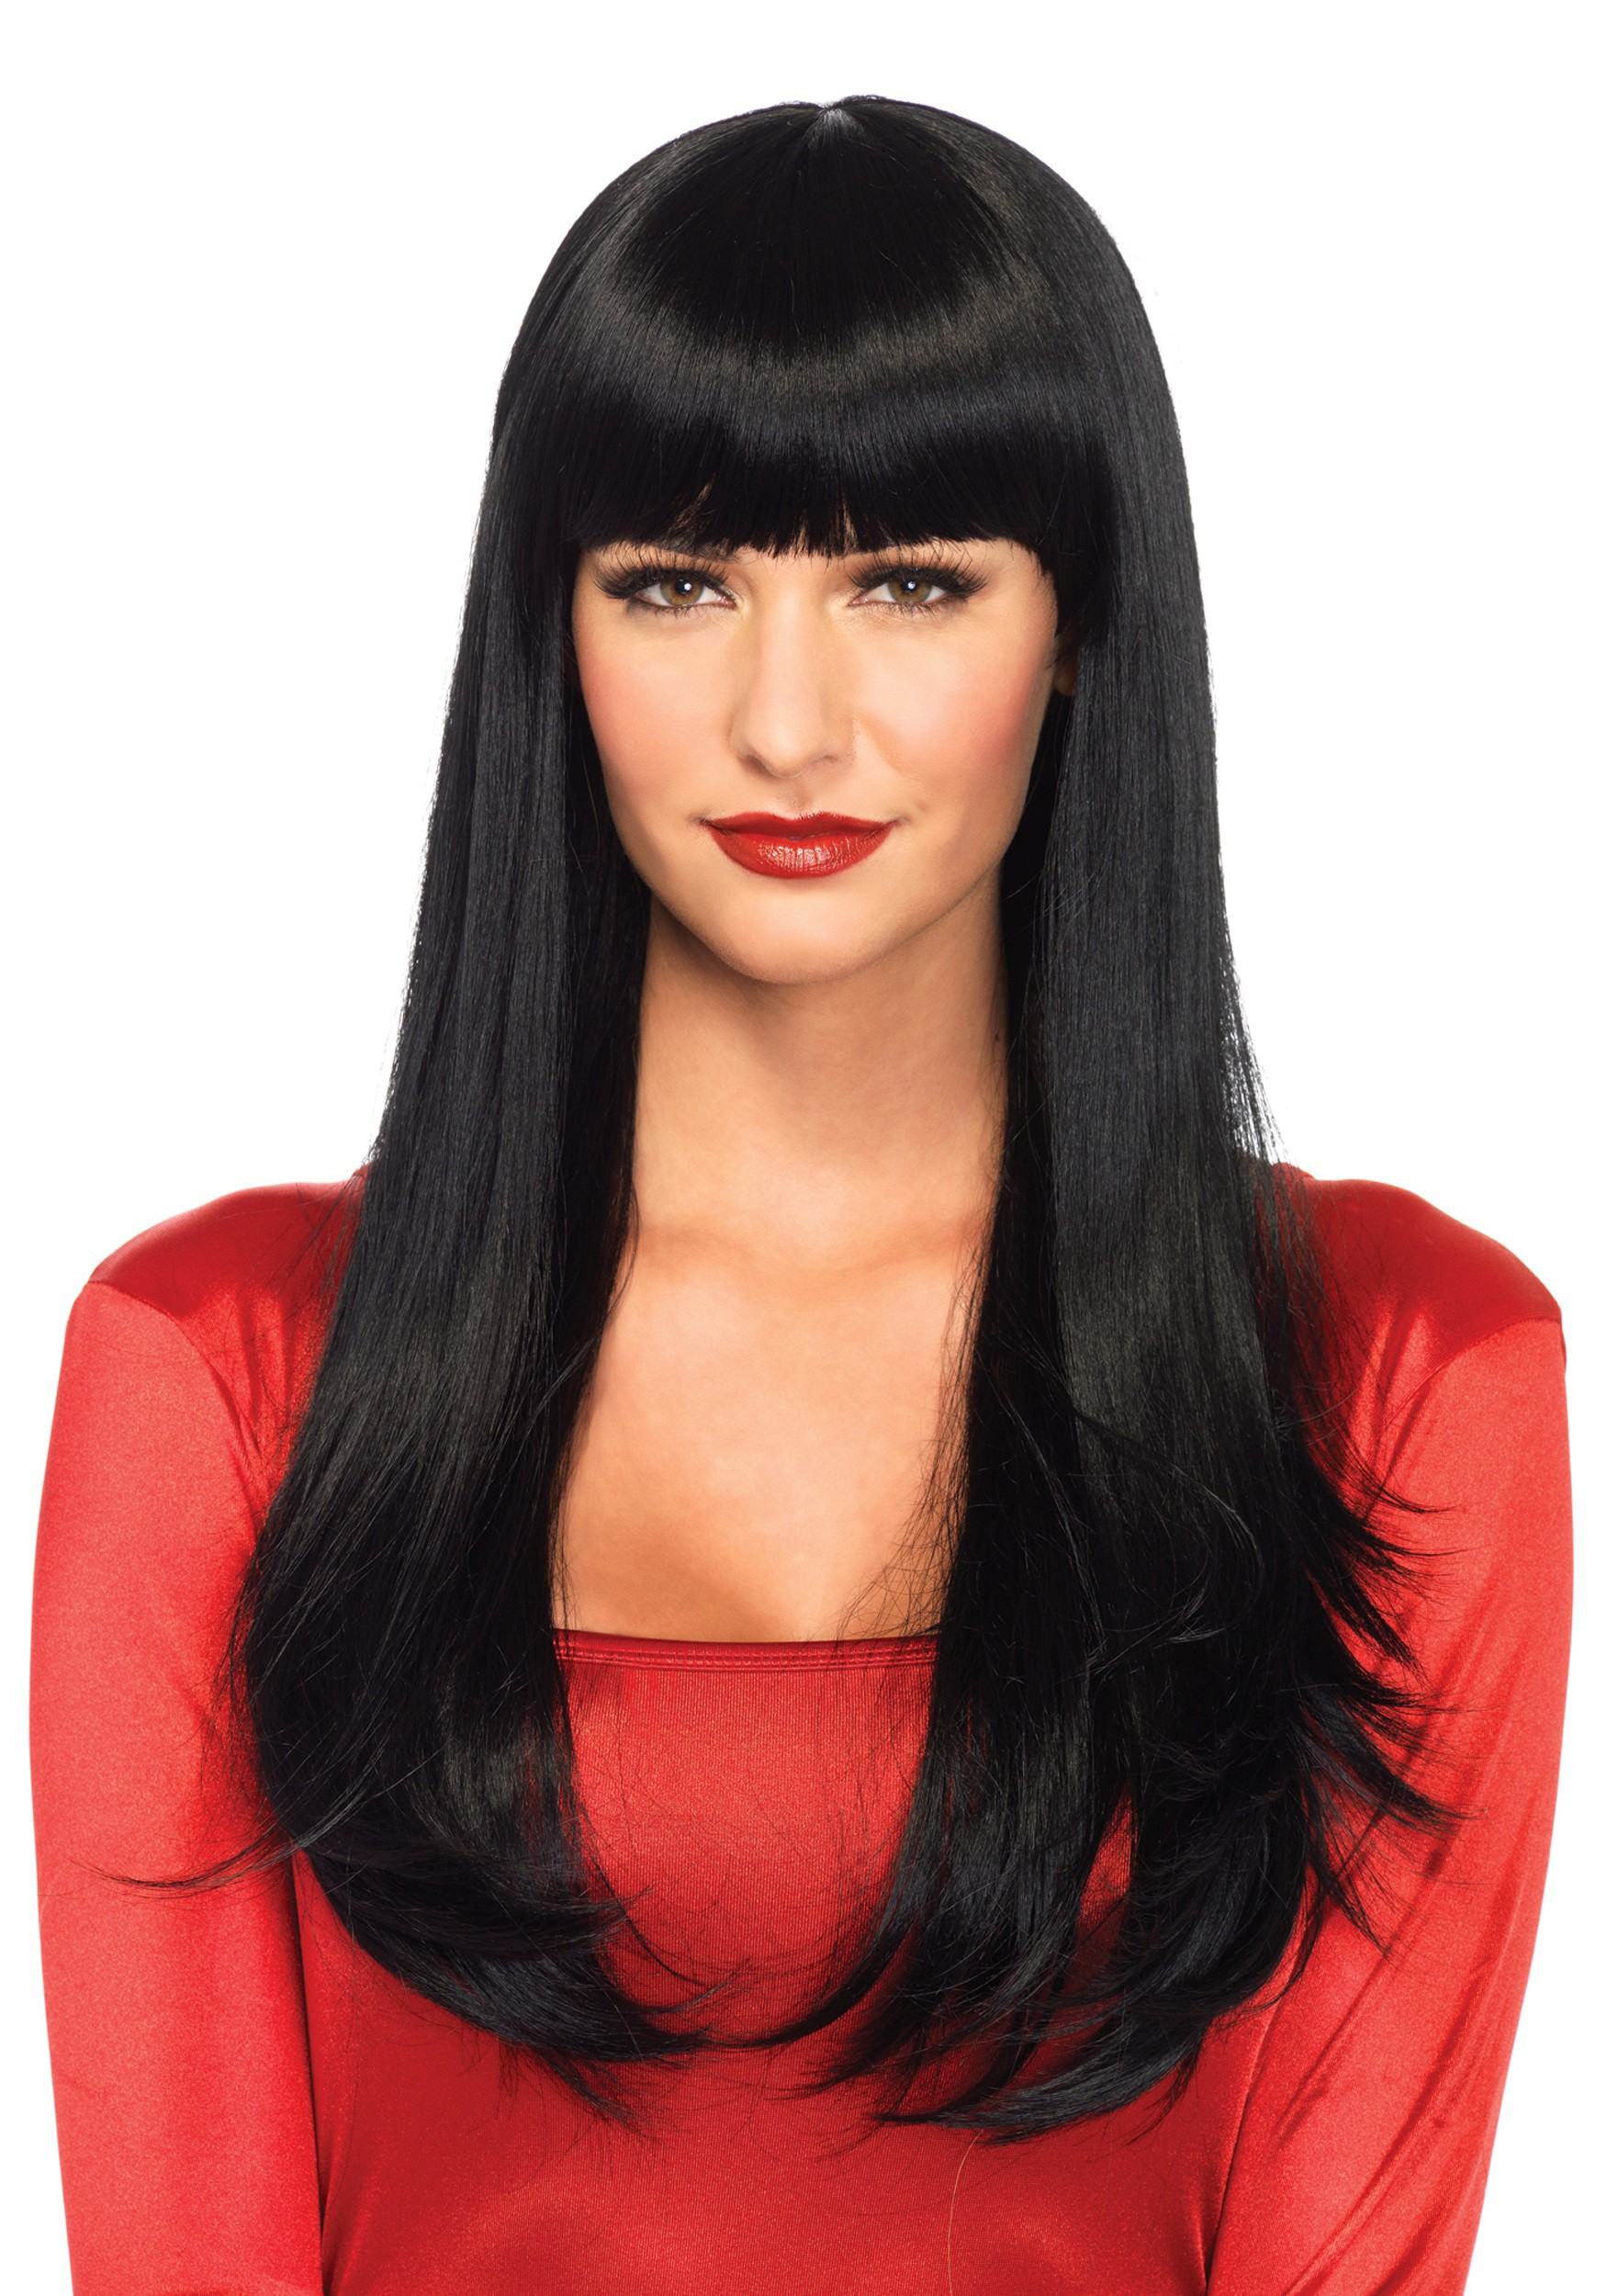 Halloween Decorations For The Home Black Straight Wig With Bangs